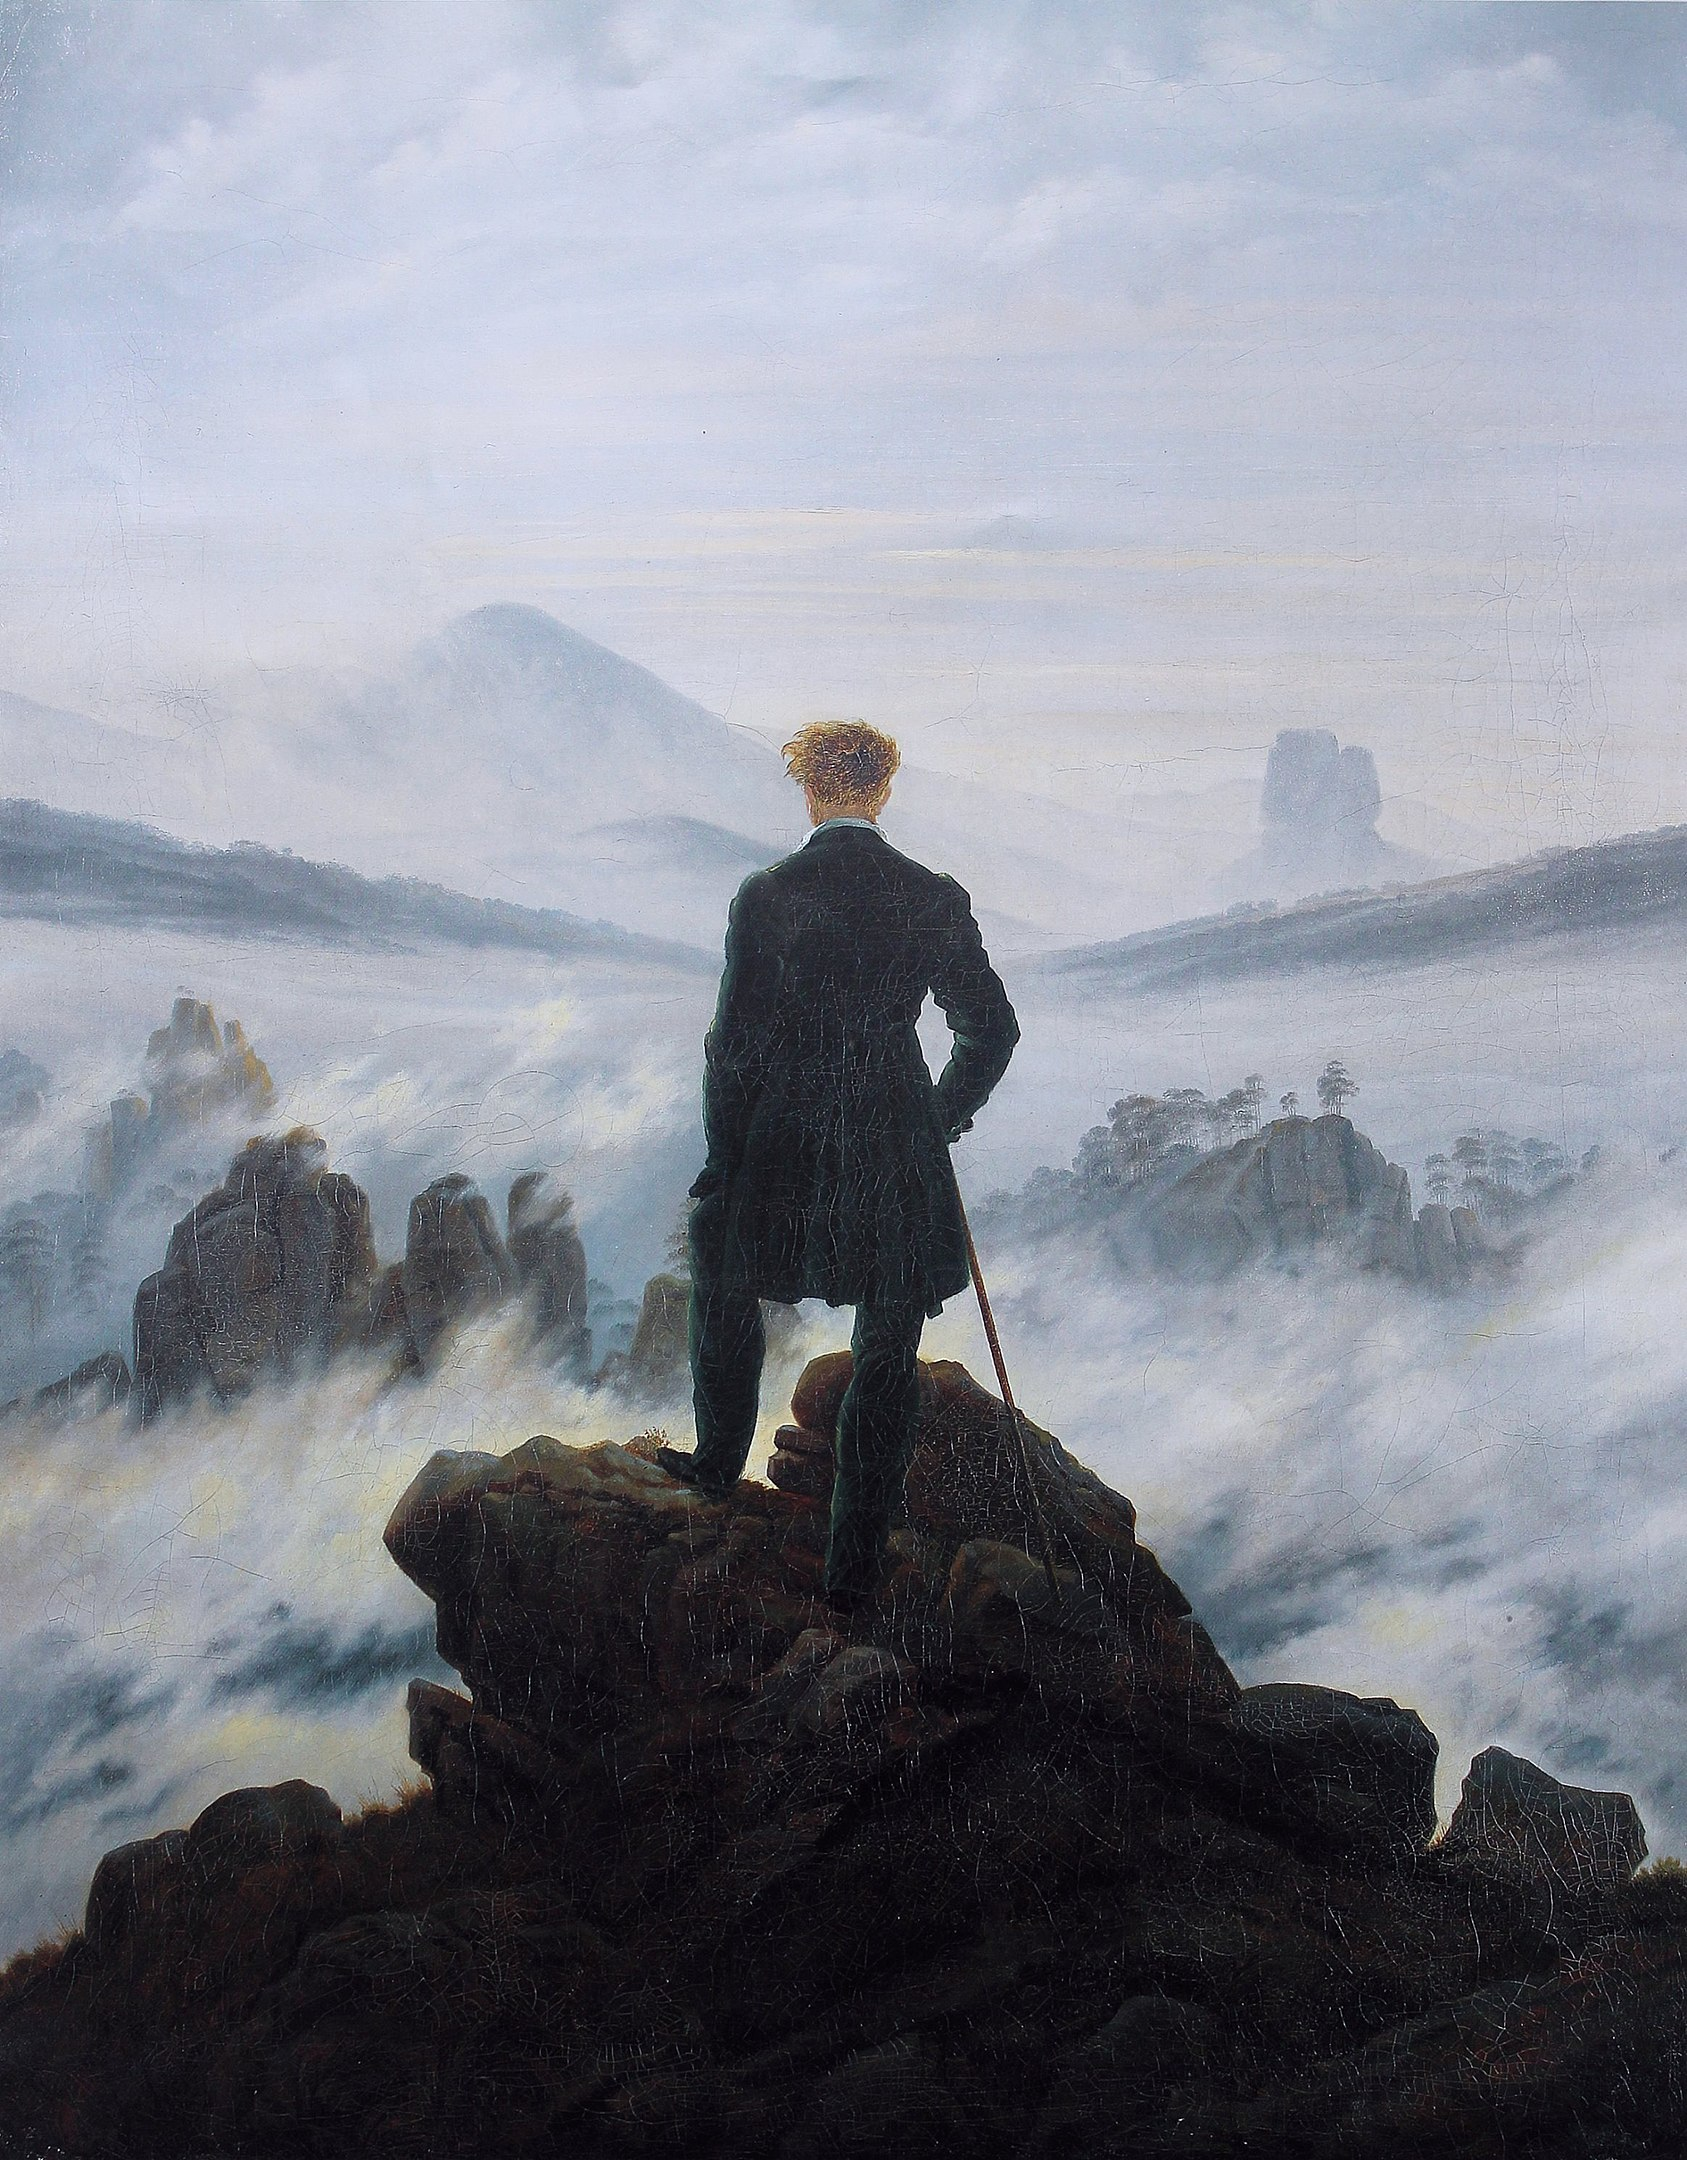 The hiker stands as a back figure in the center of the composition. He looks down on an almost impenetrable sea of fog in the midst of a rocky landscape - a metaphor for life as an ominous journey into the unknown.  By Caspar David Friedrich - The photographic reproduction was done by Cybershot800i. (Diff), Public Domain, https://commons.wikimedia.org/w/index.php?curid=1020146